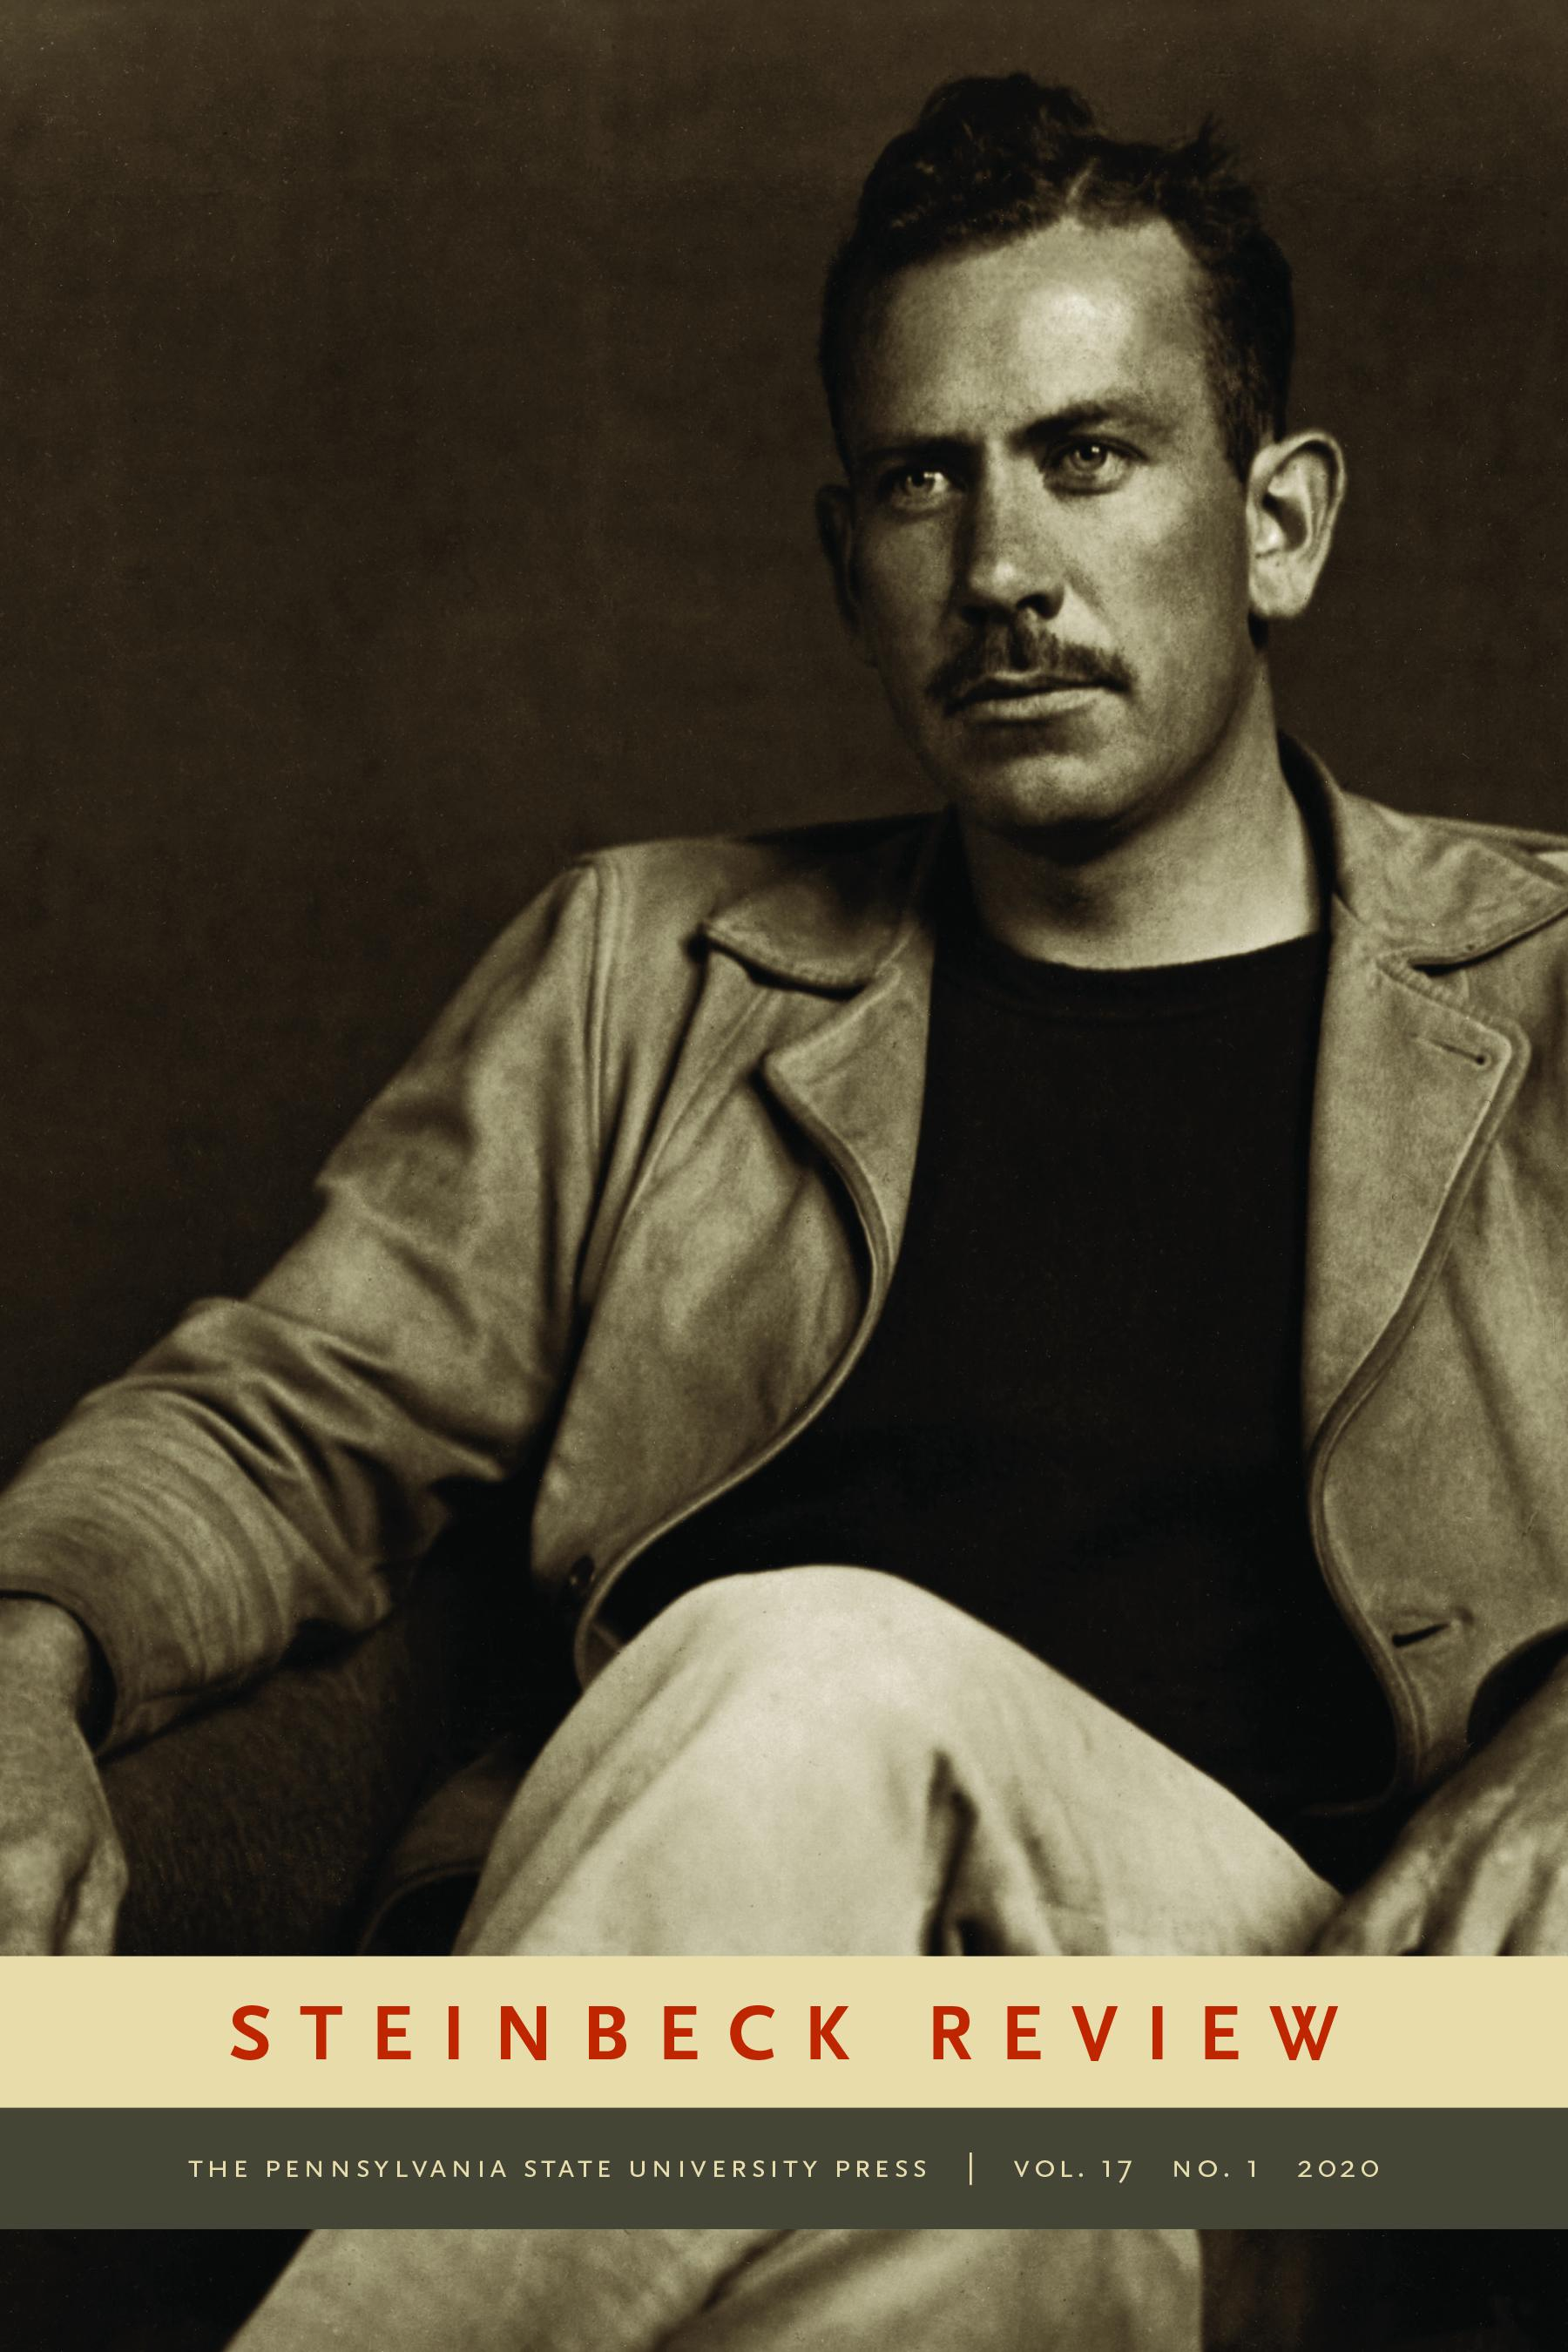 Image of cover of spring 2020 issue of Steinbeck Review